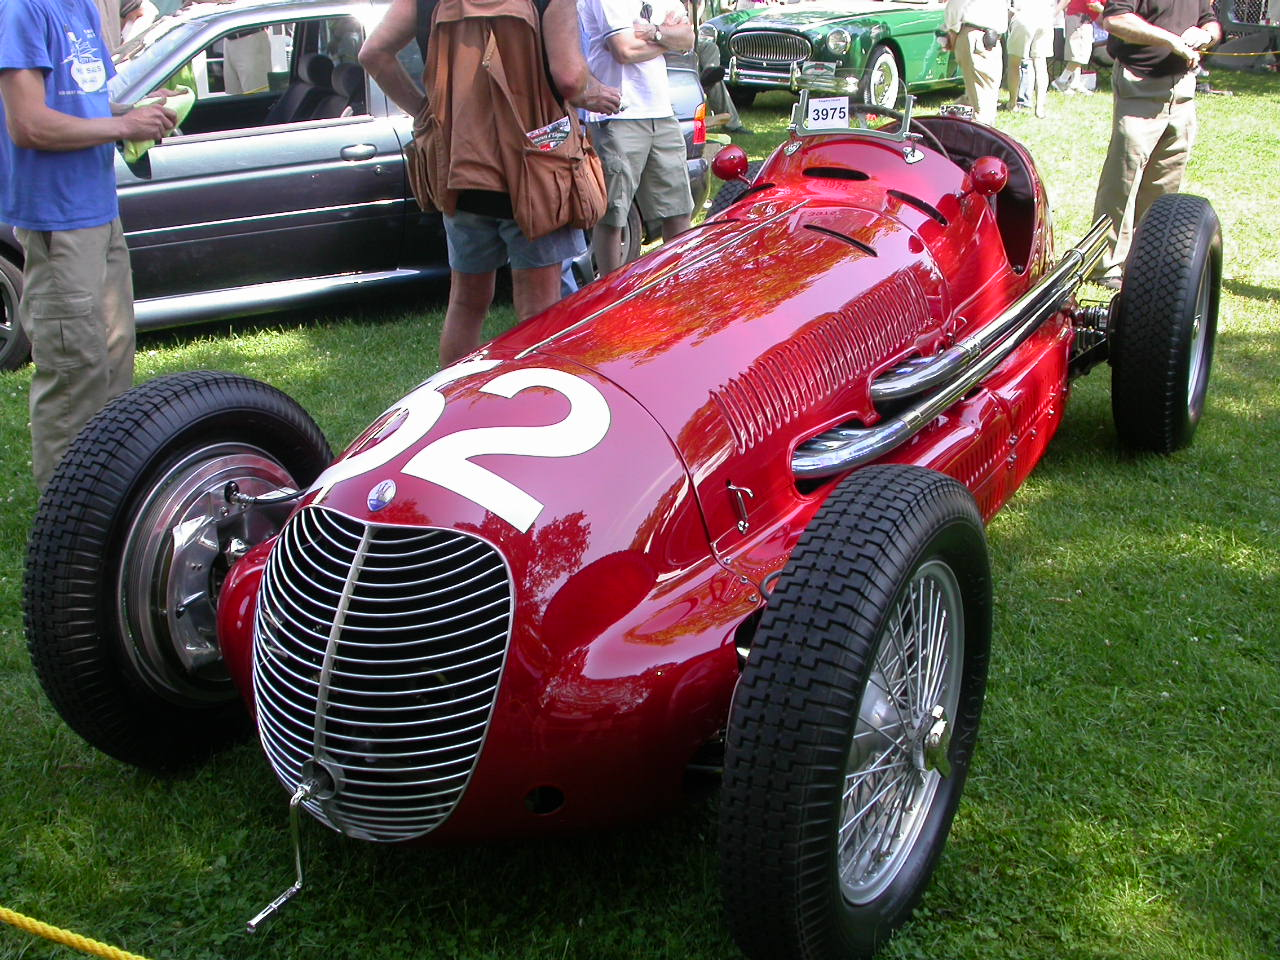 Maserati Grand Prix Race Car